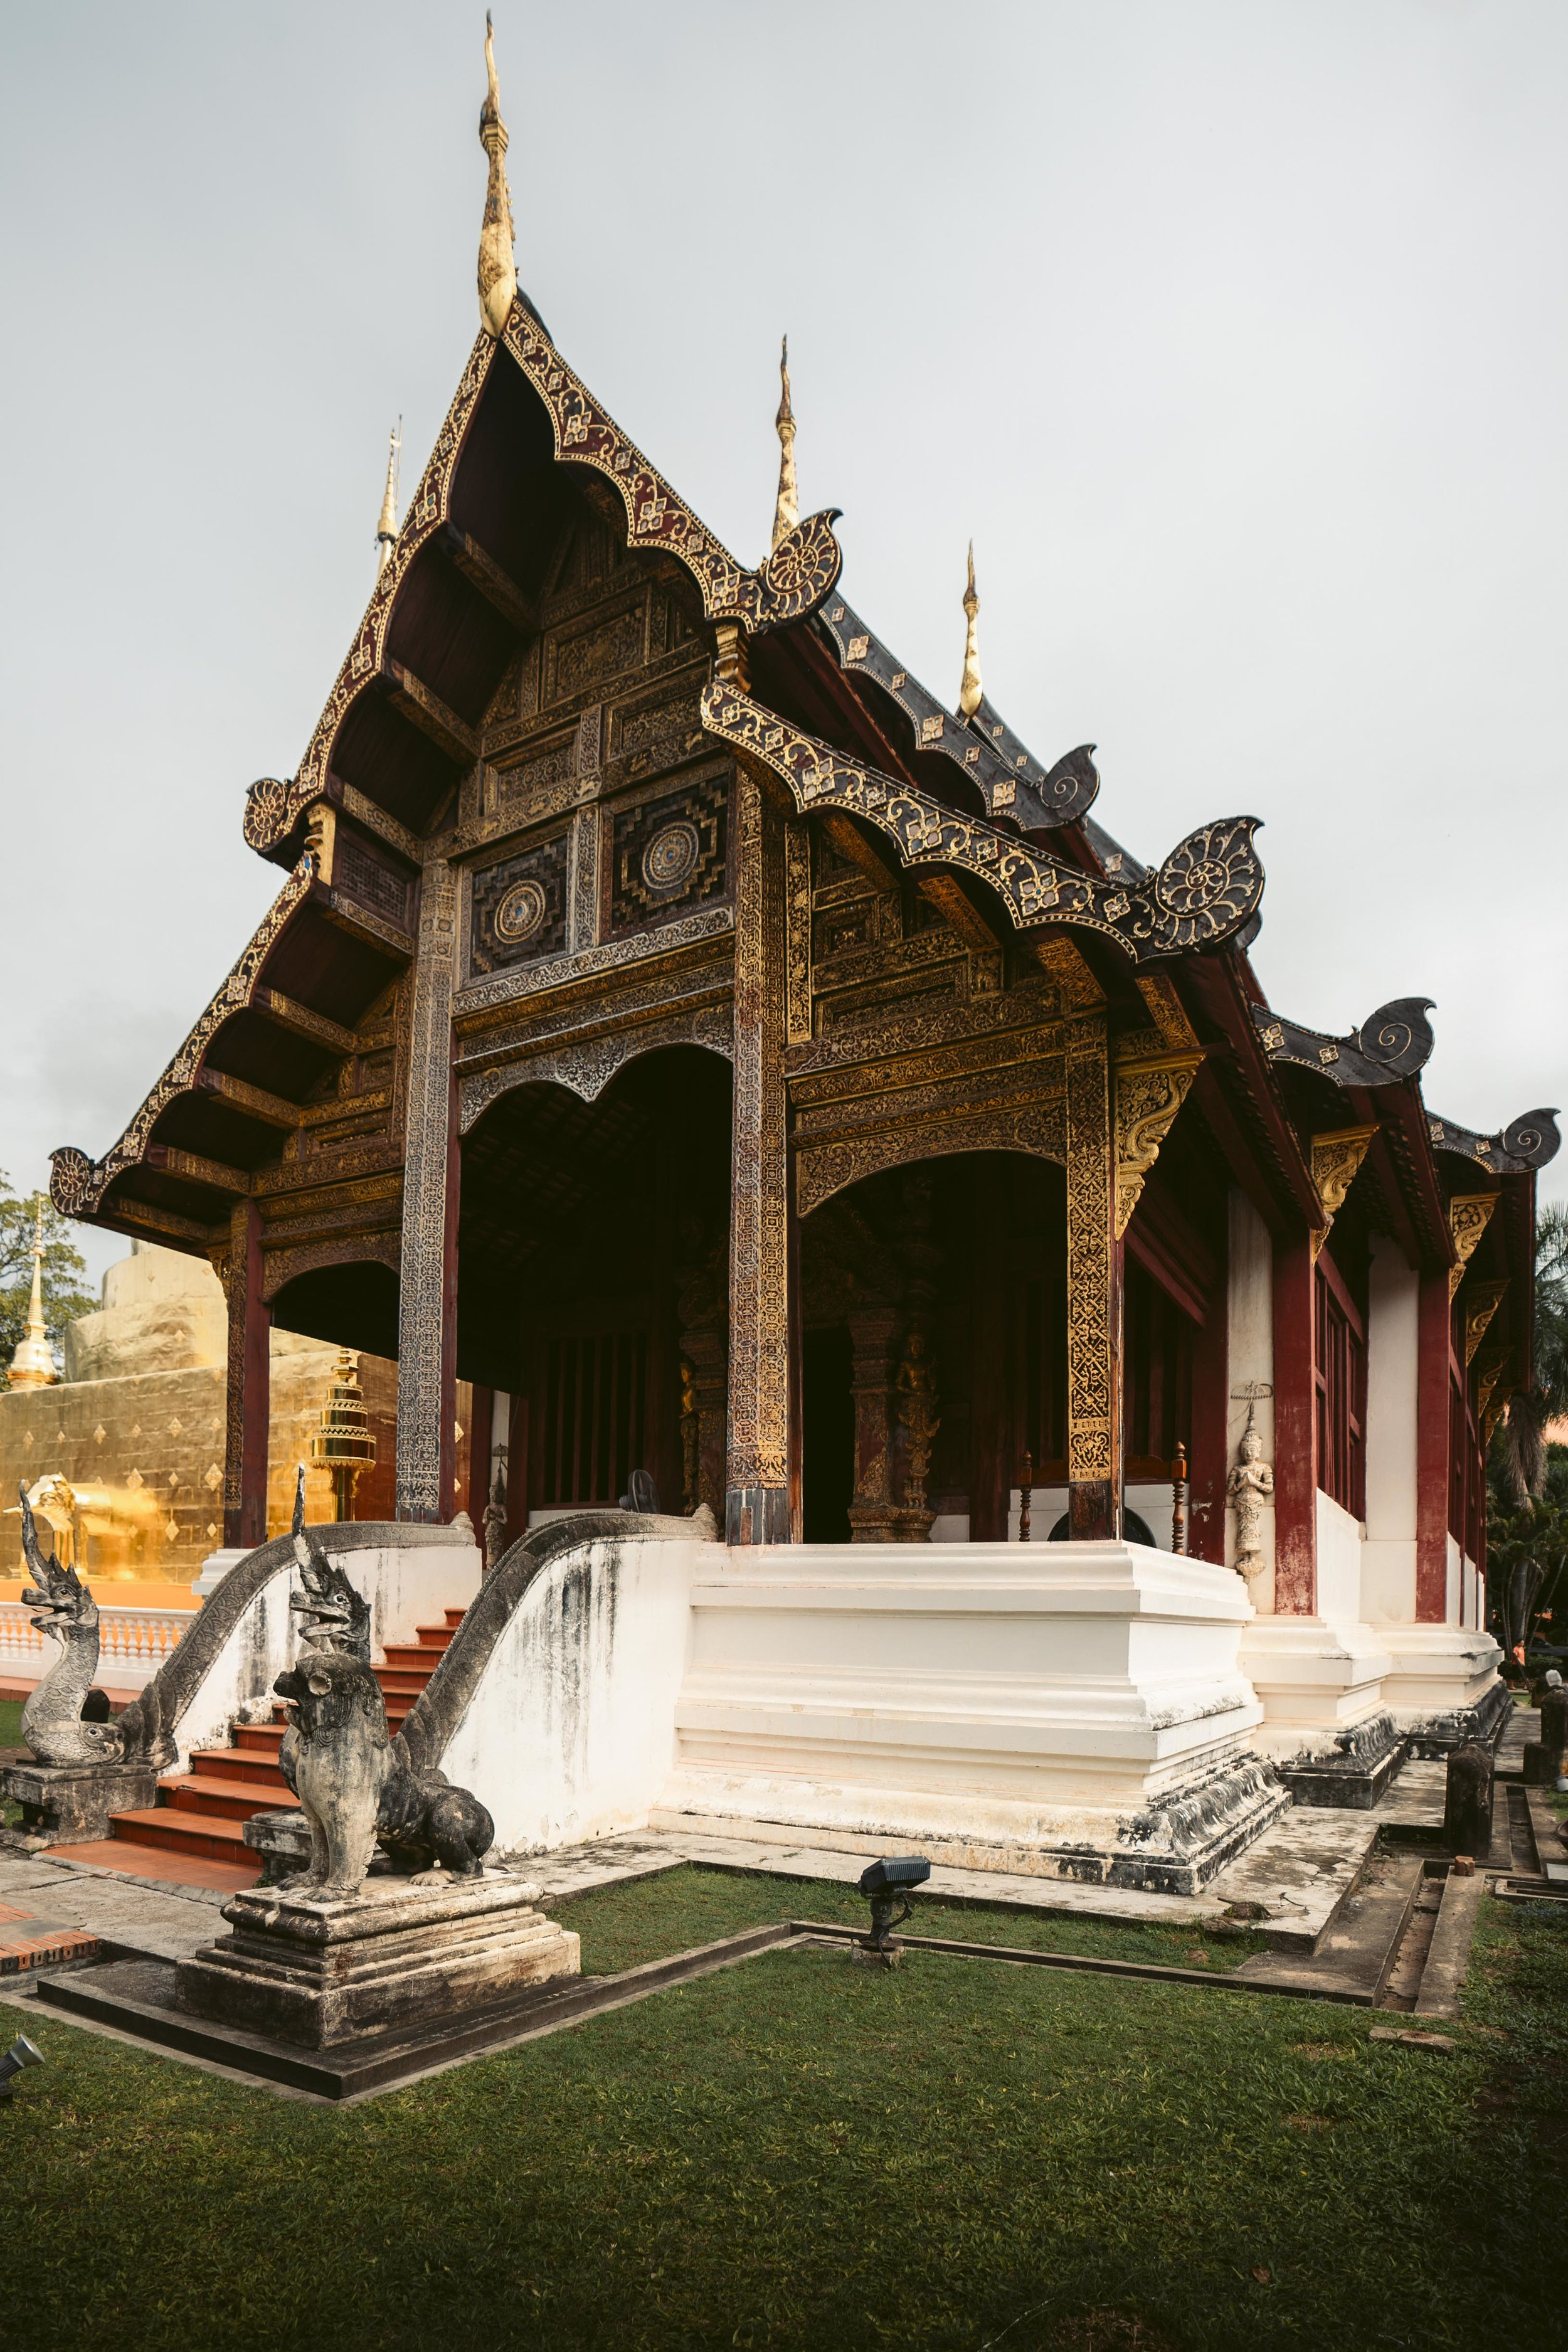 Did you know that there are 300 temples (wats) in Chiang Mai? Neither did I!